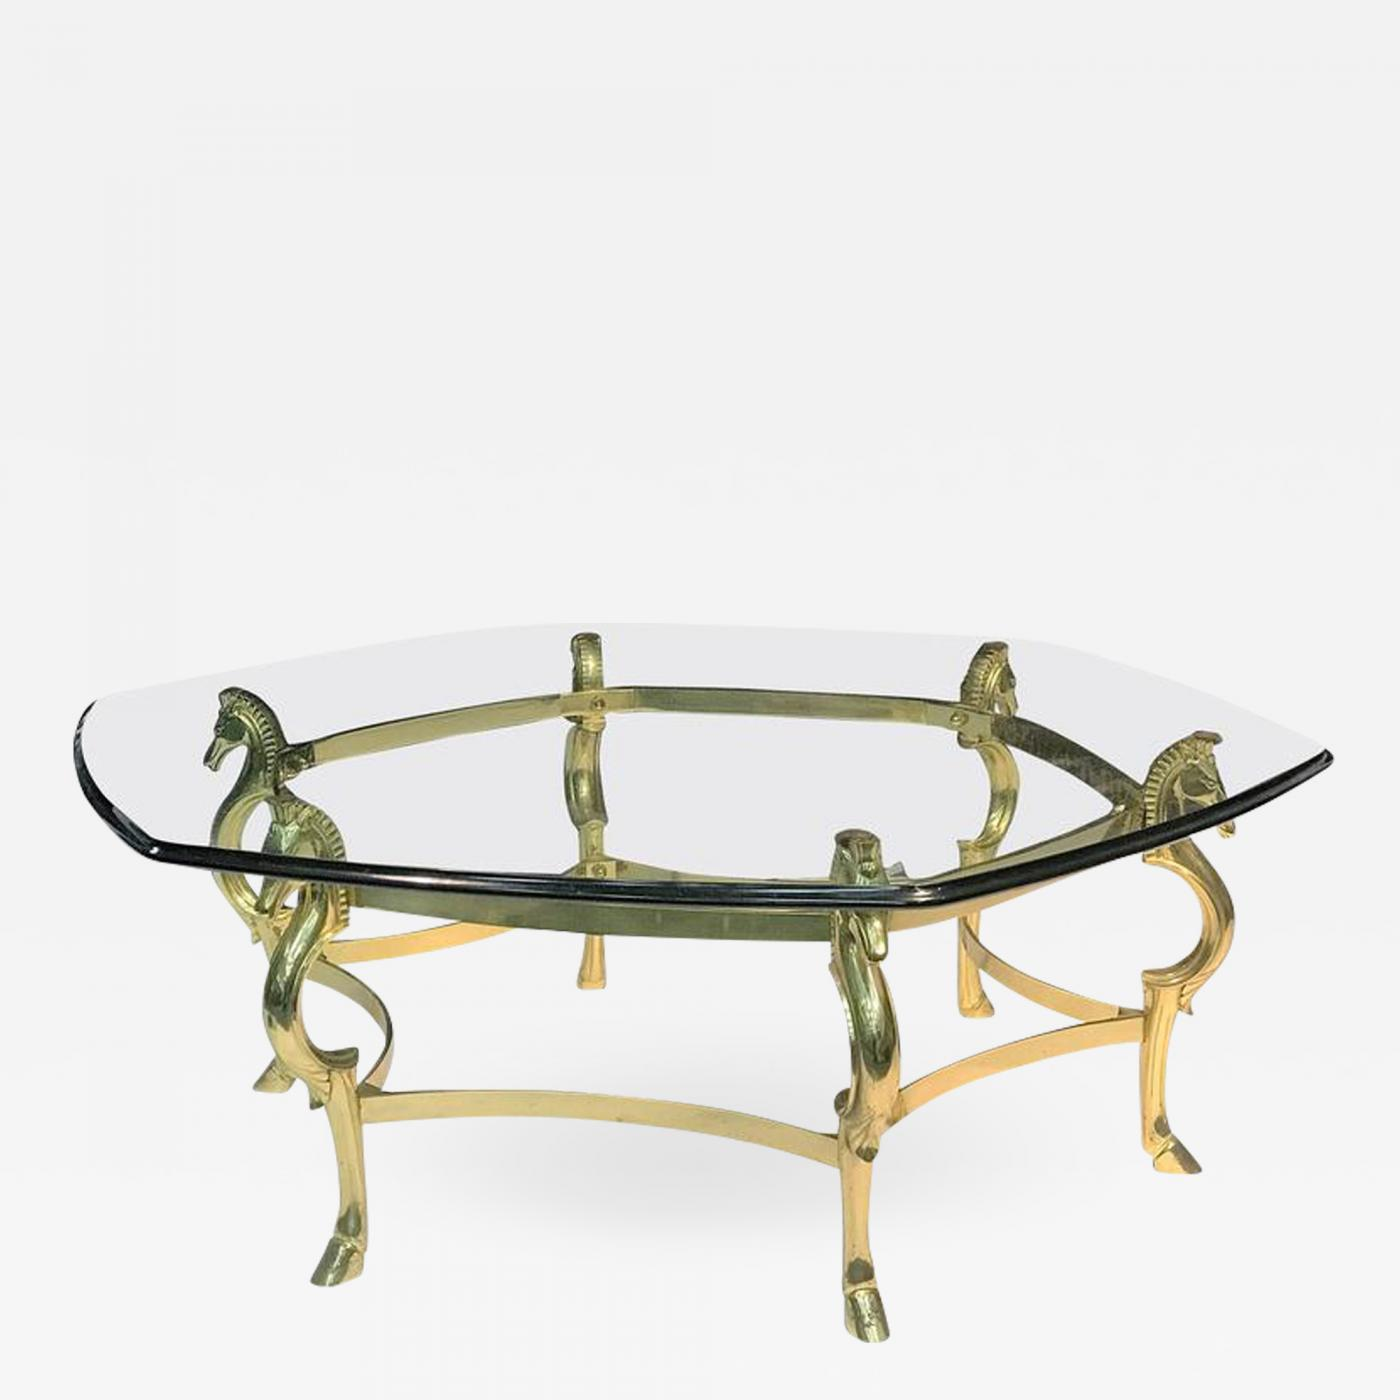 Italian Modernist Brass Seahorse Coffee Table - Seahorse coffee table